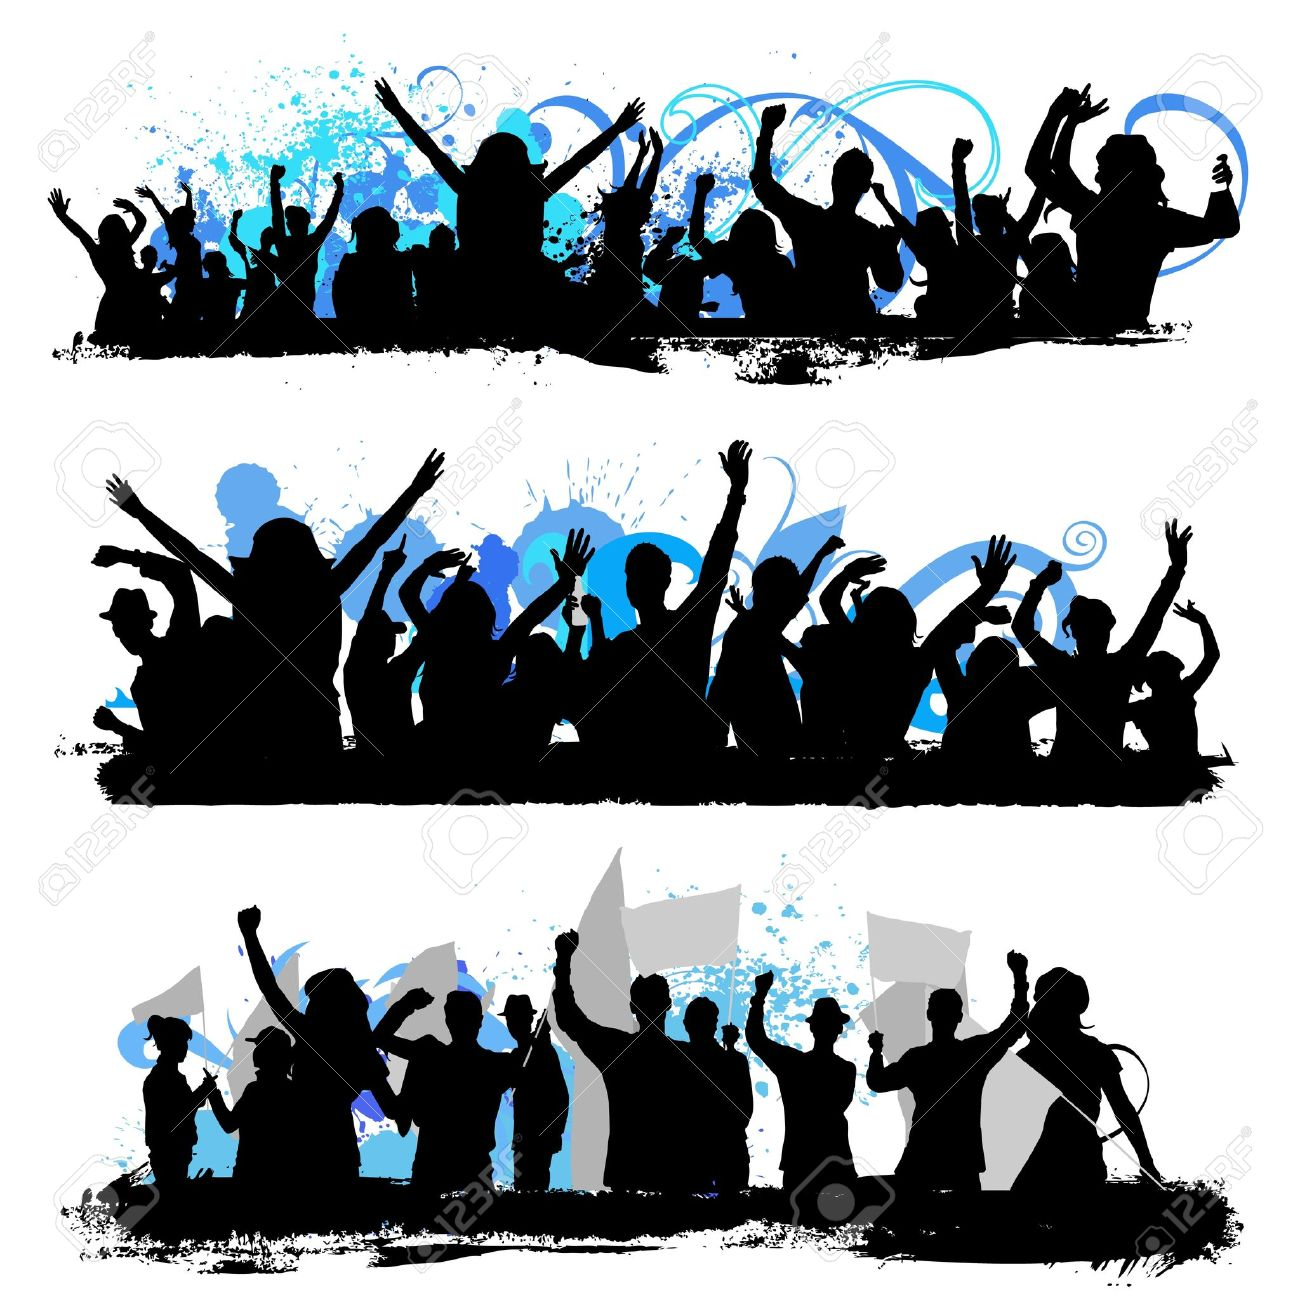 14,537 Gathering Stock Vector Illustration And Royalty Free.